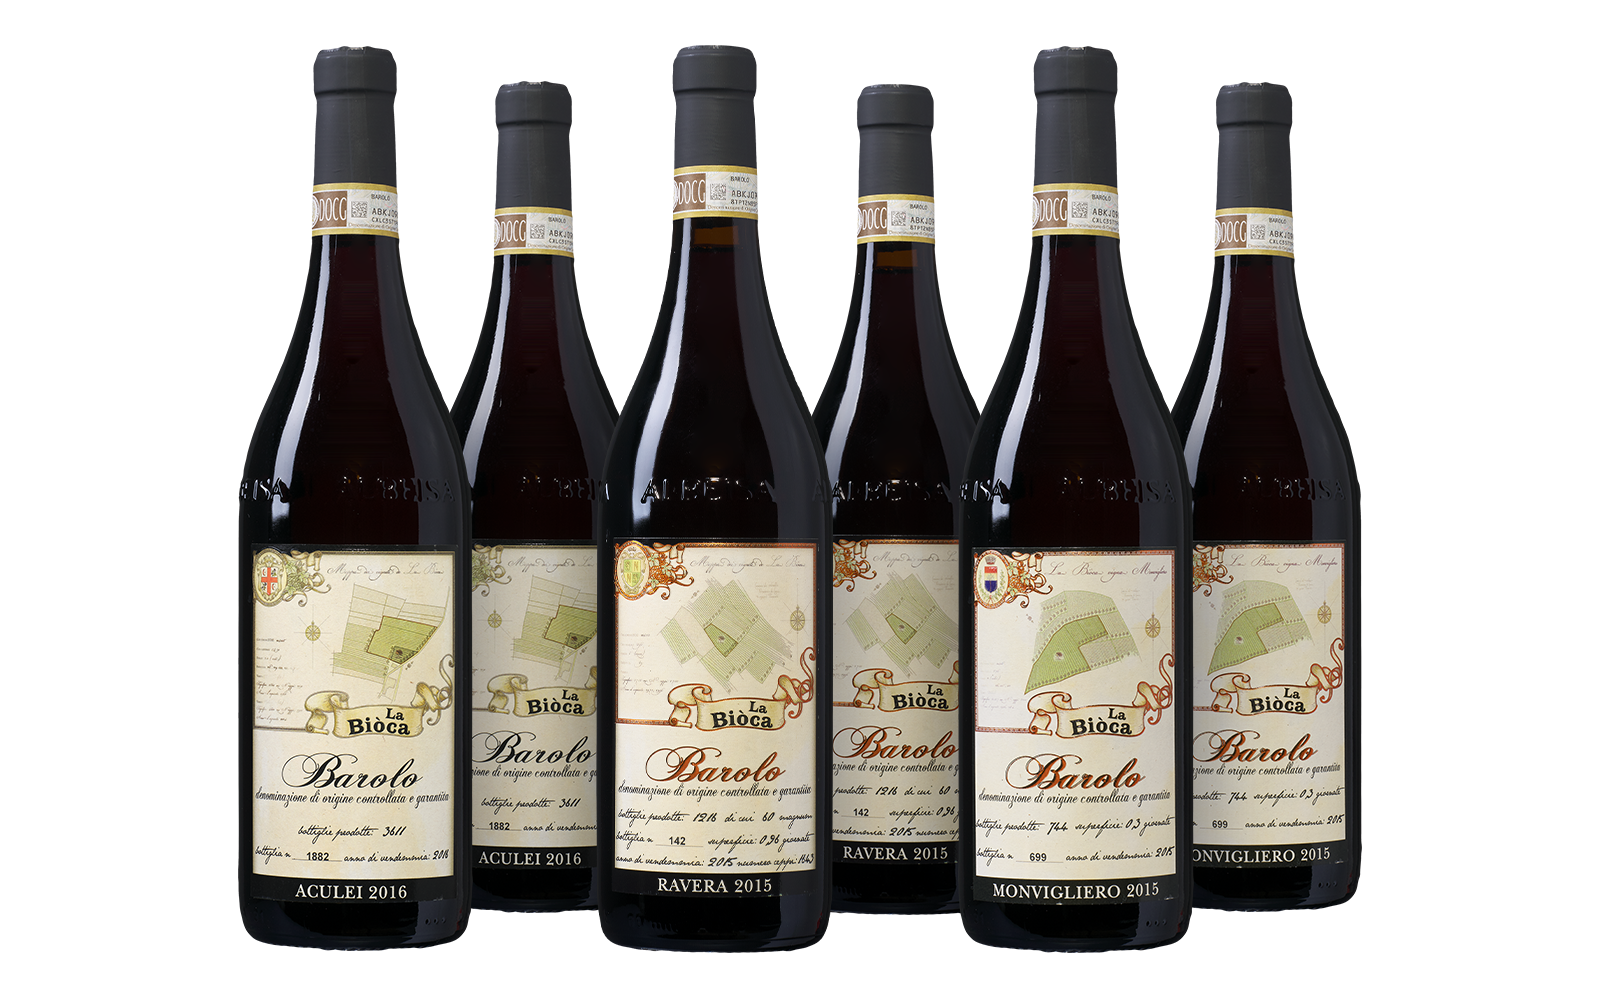 La Biòca Barolo Collectie